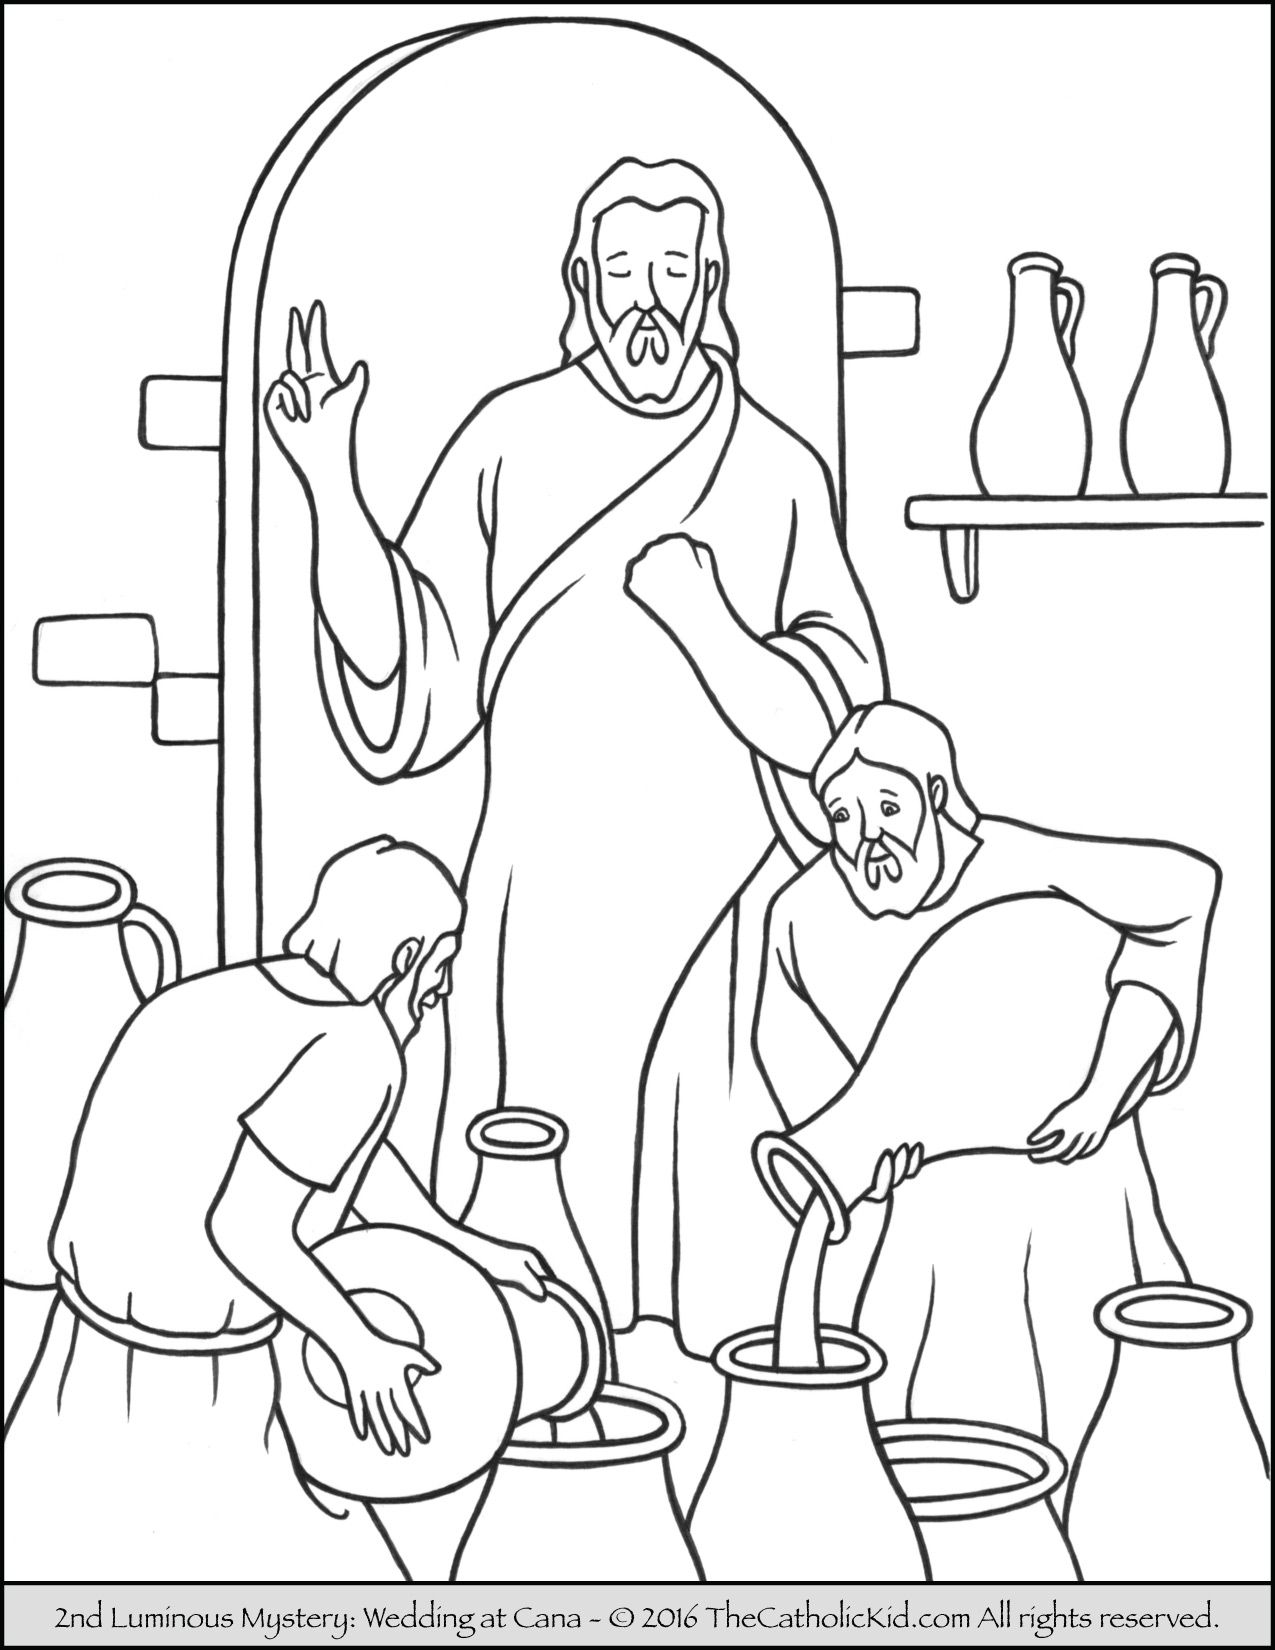 The 2nd Luminous Mystery Coloring Page Wedding At Cana